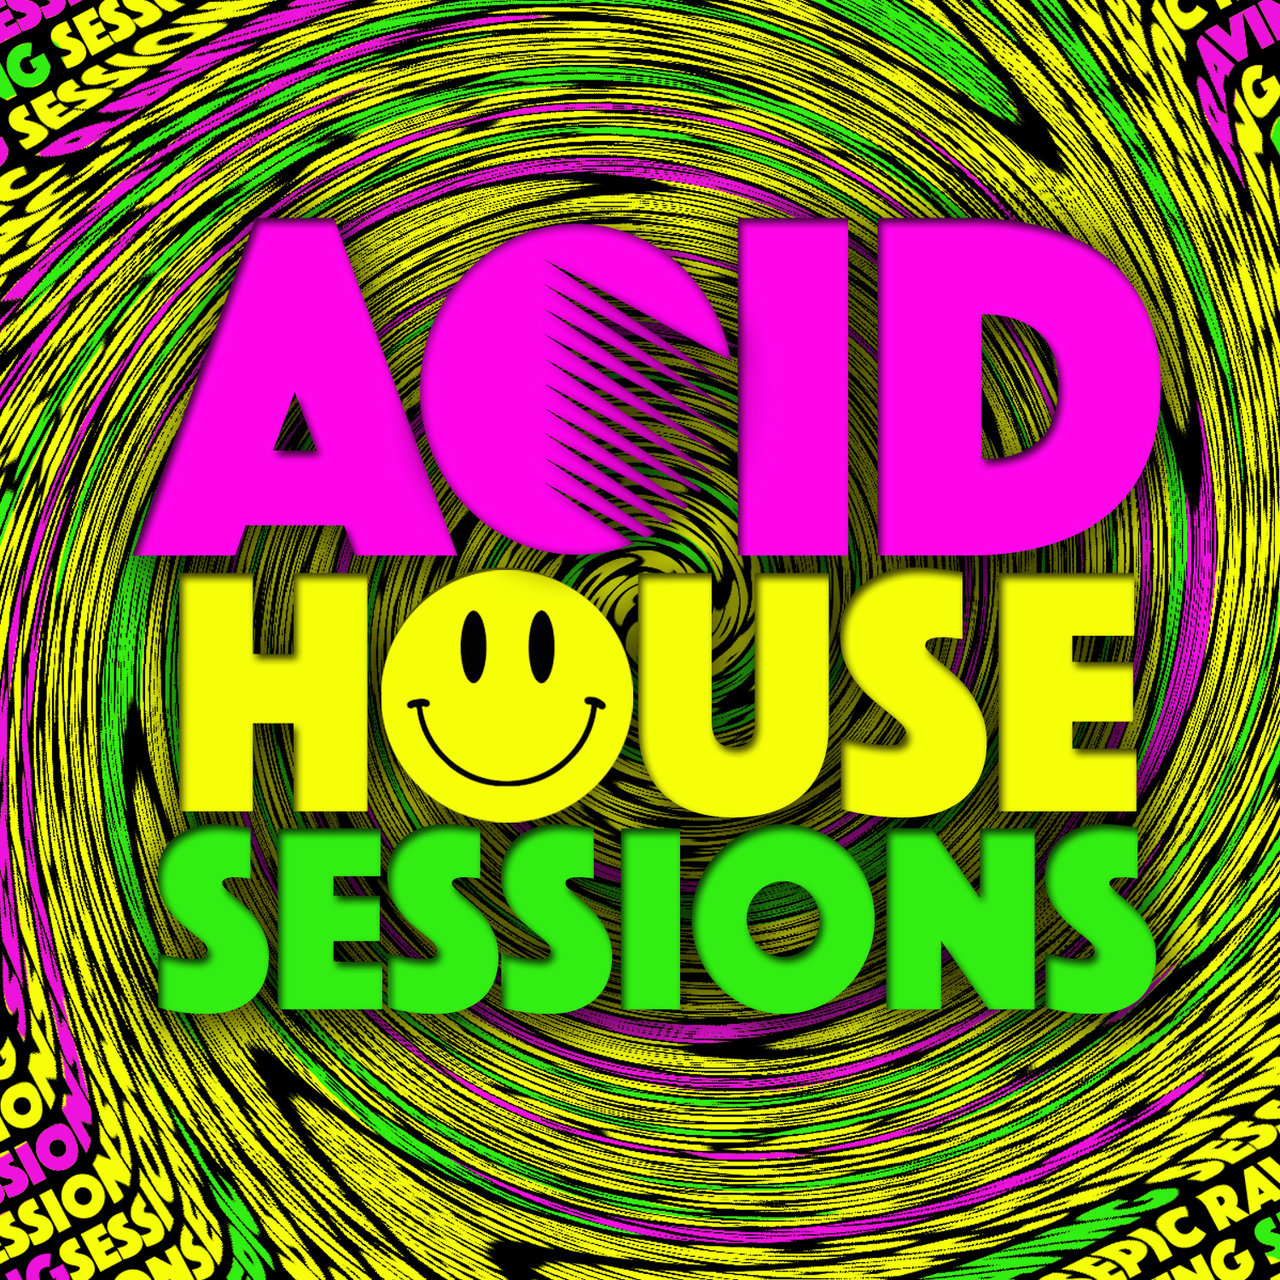 Tidal listen to acid house on tidal for Best acid house albums